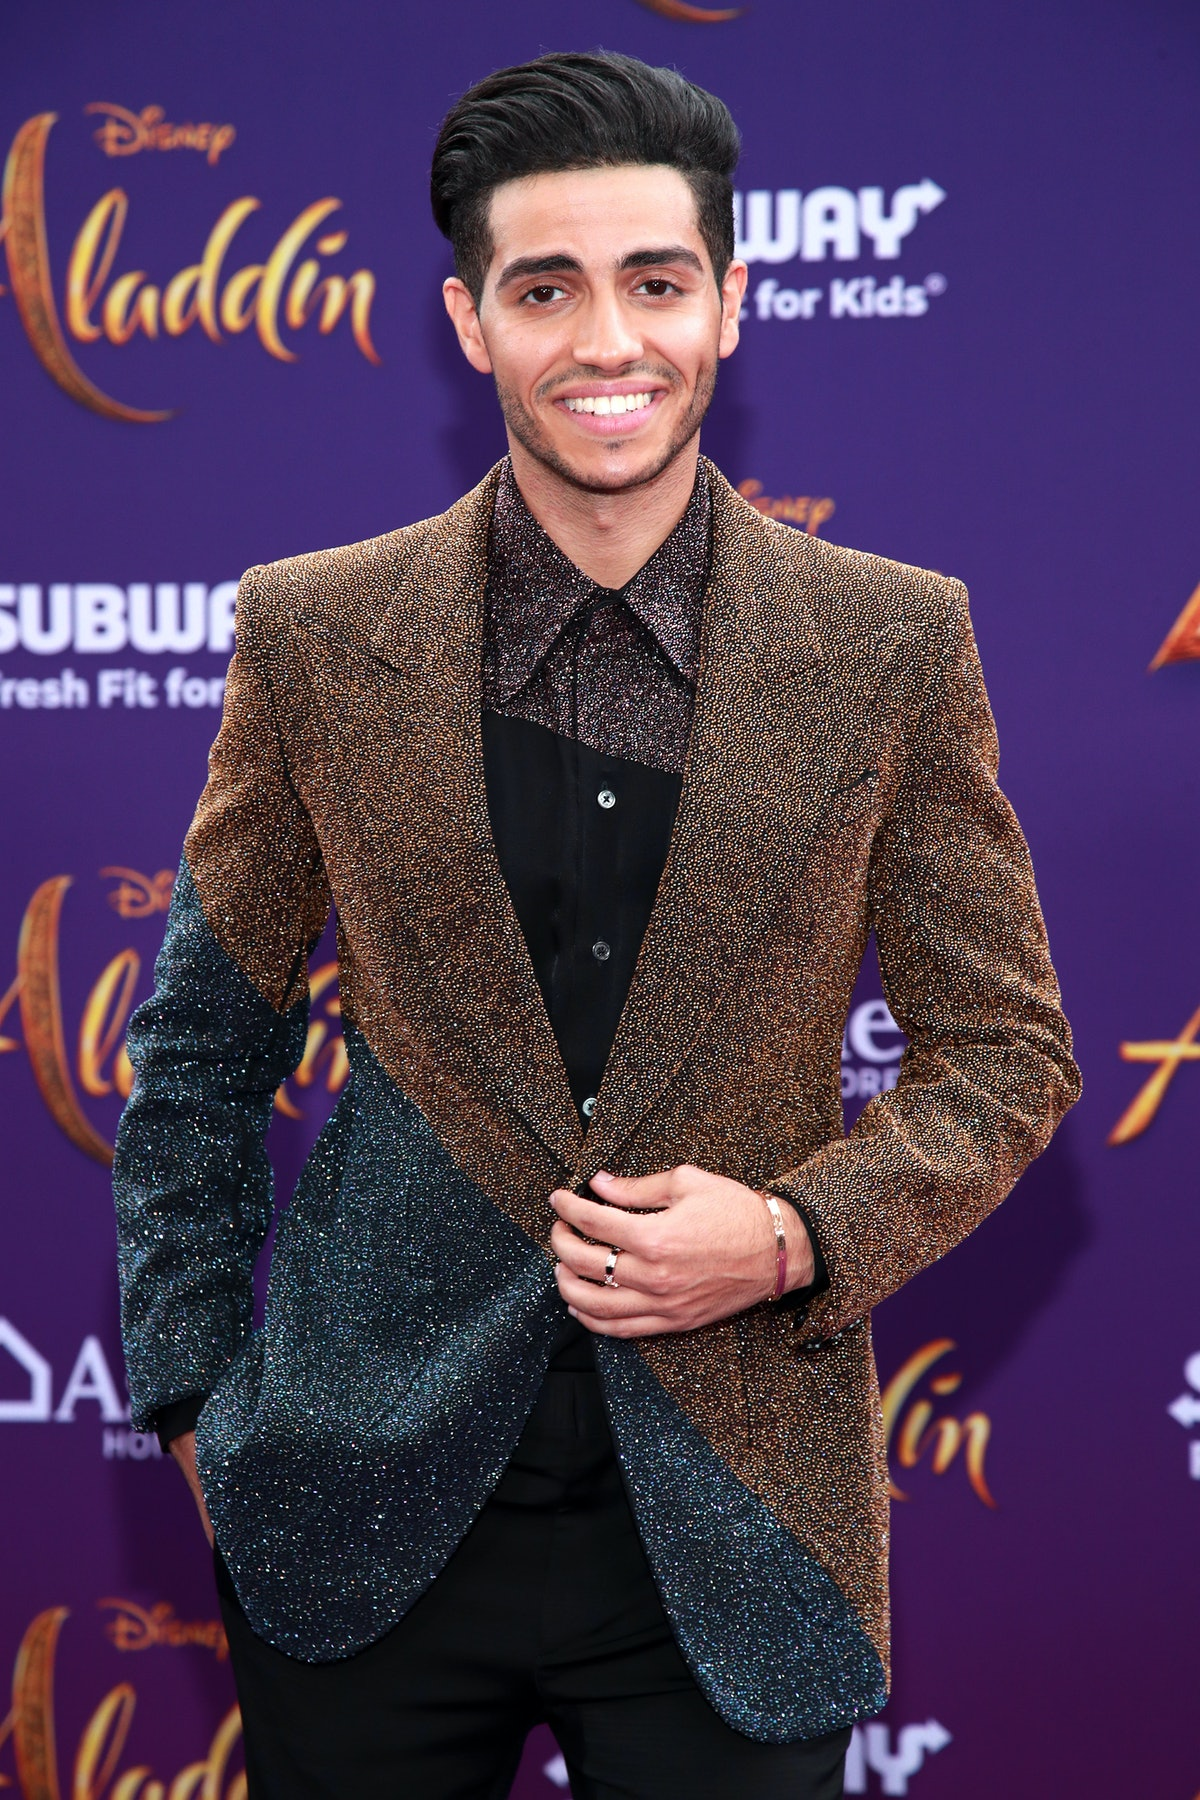 Who Is Mena Massoud Dating? The 'Aladdin' Star Sounds Like A Great Catch